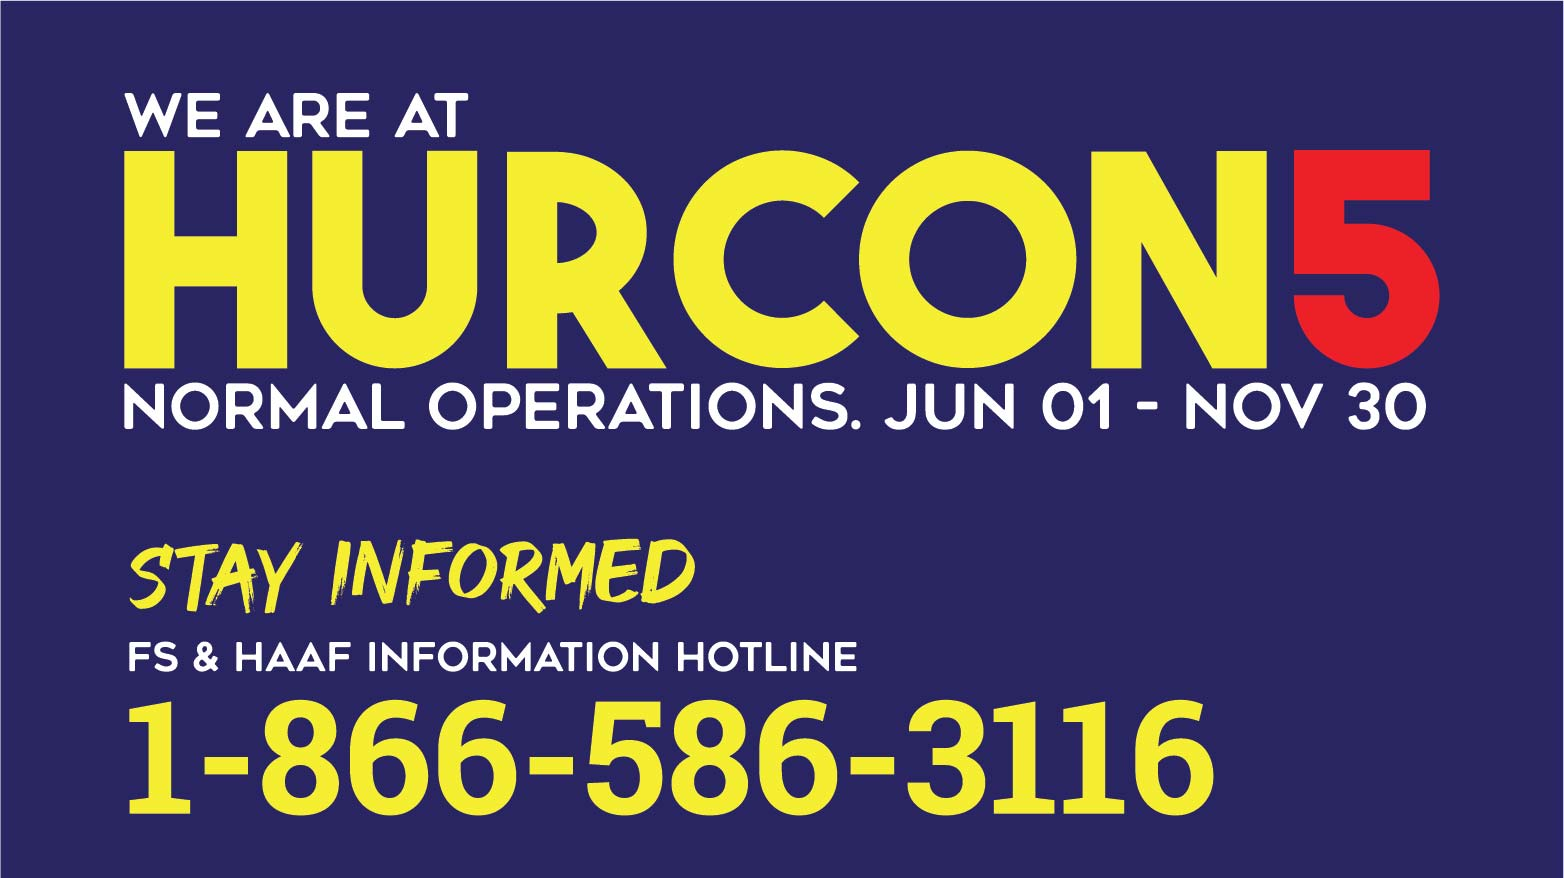 We are at HURCON 5